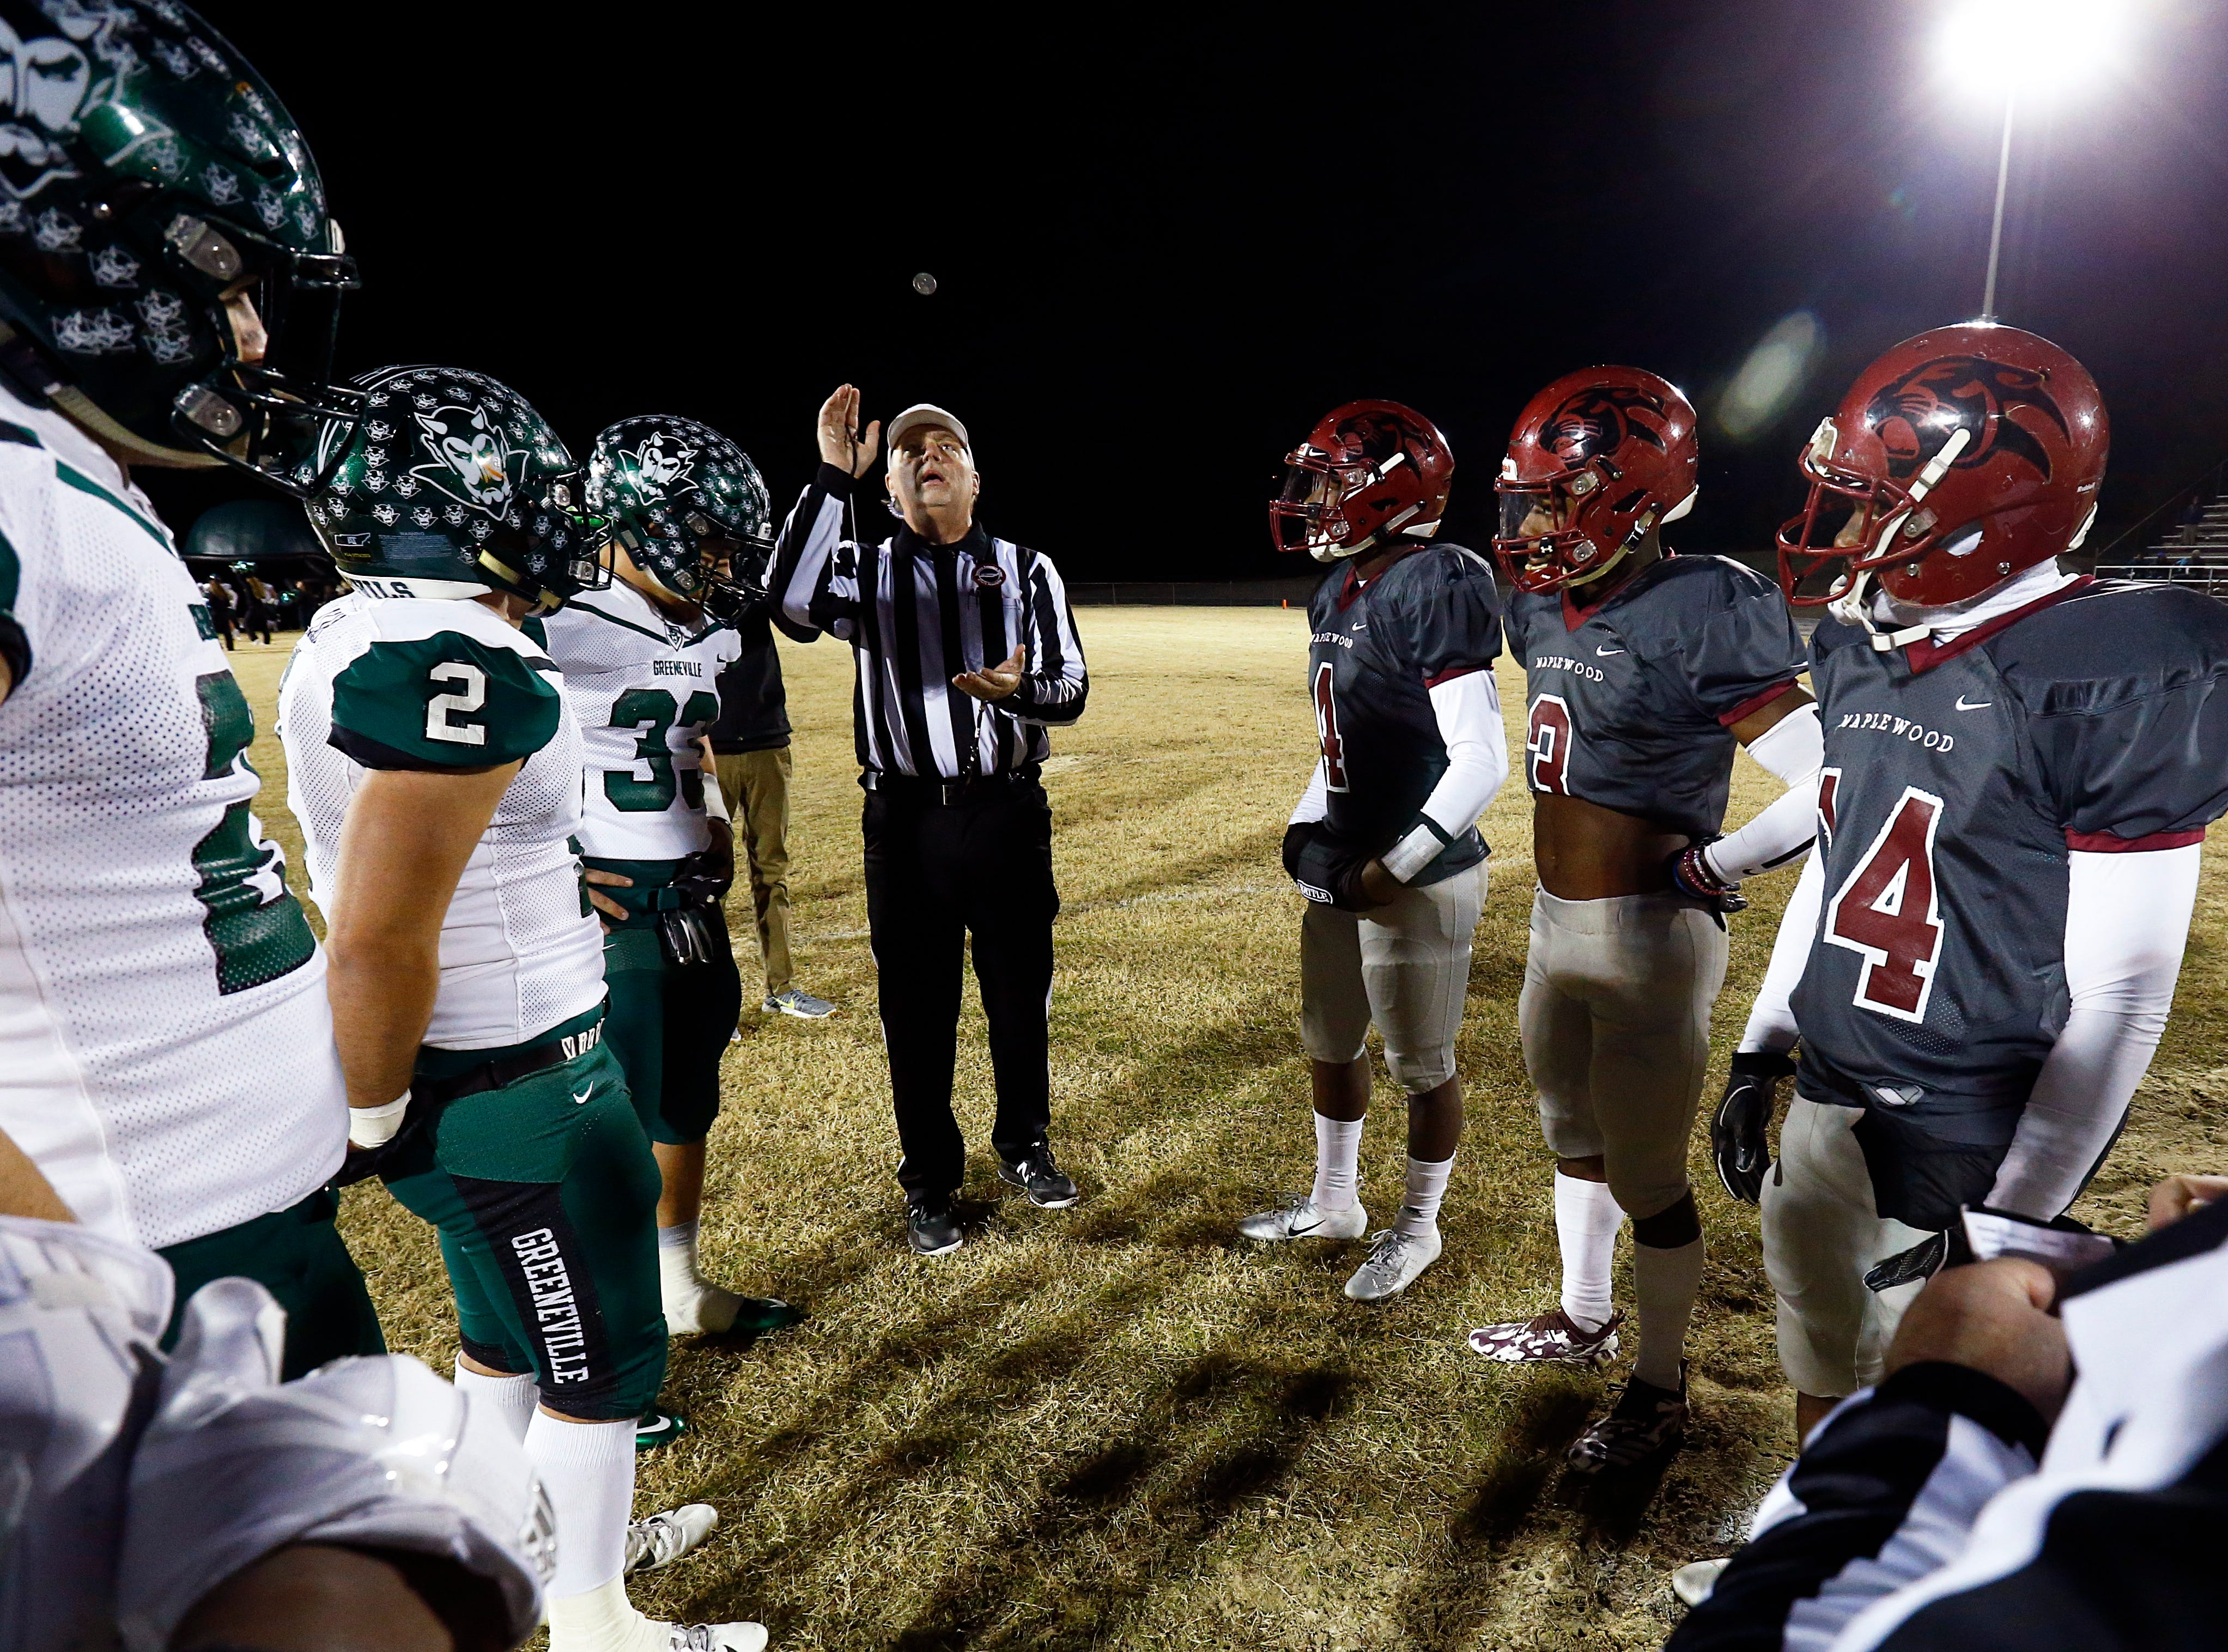 The head official tosses the coin before the game between Greeneville and Maplewood Friday, Nov. 23, 2018, in Nashville, TN.